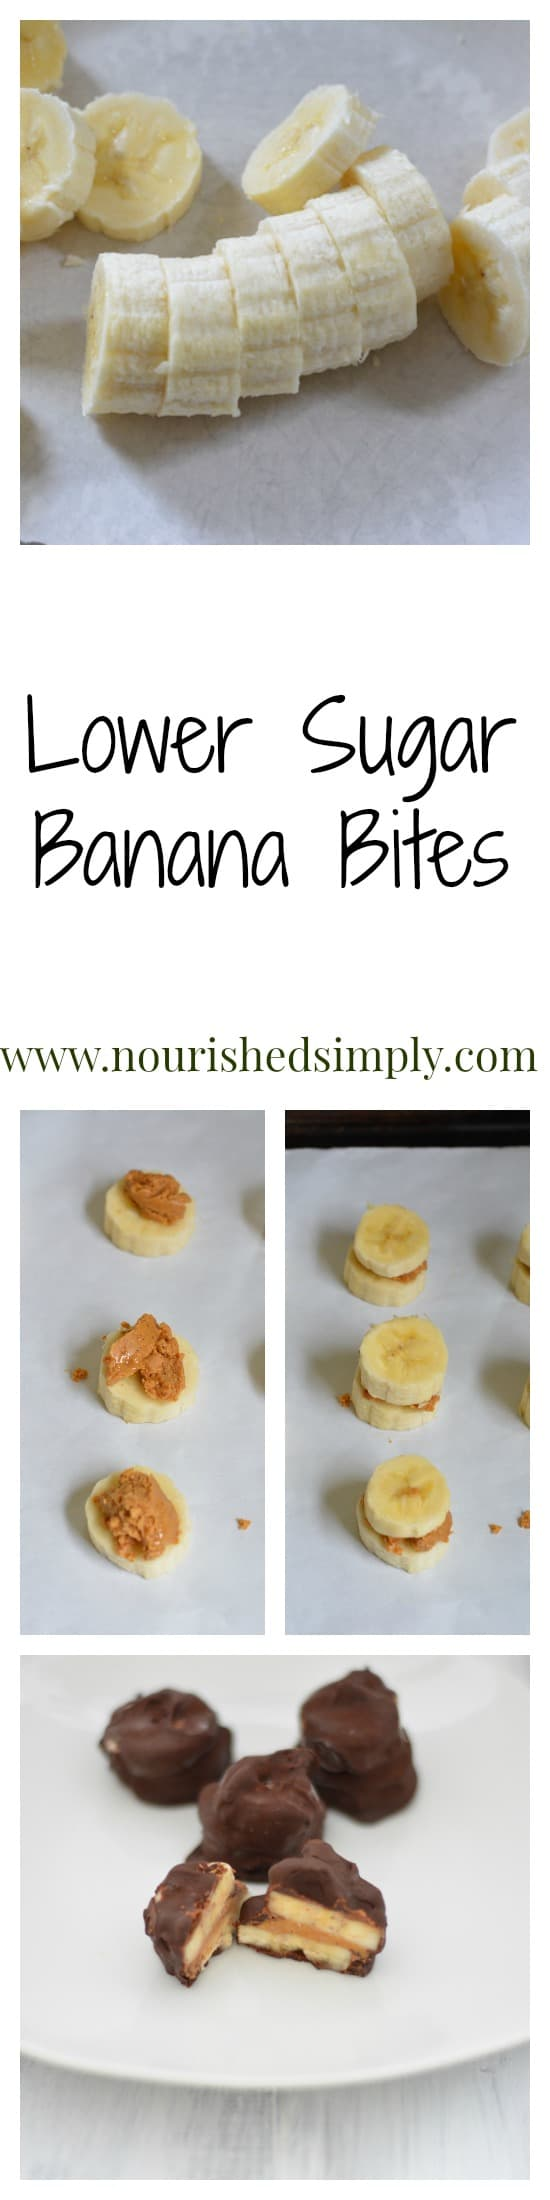 Banana Bites Collage